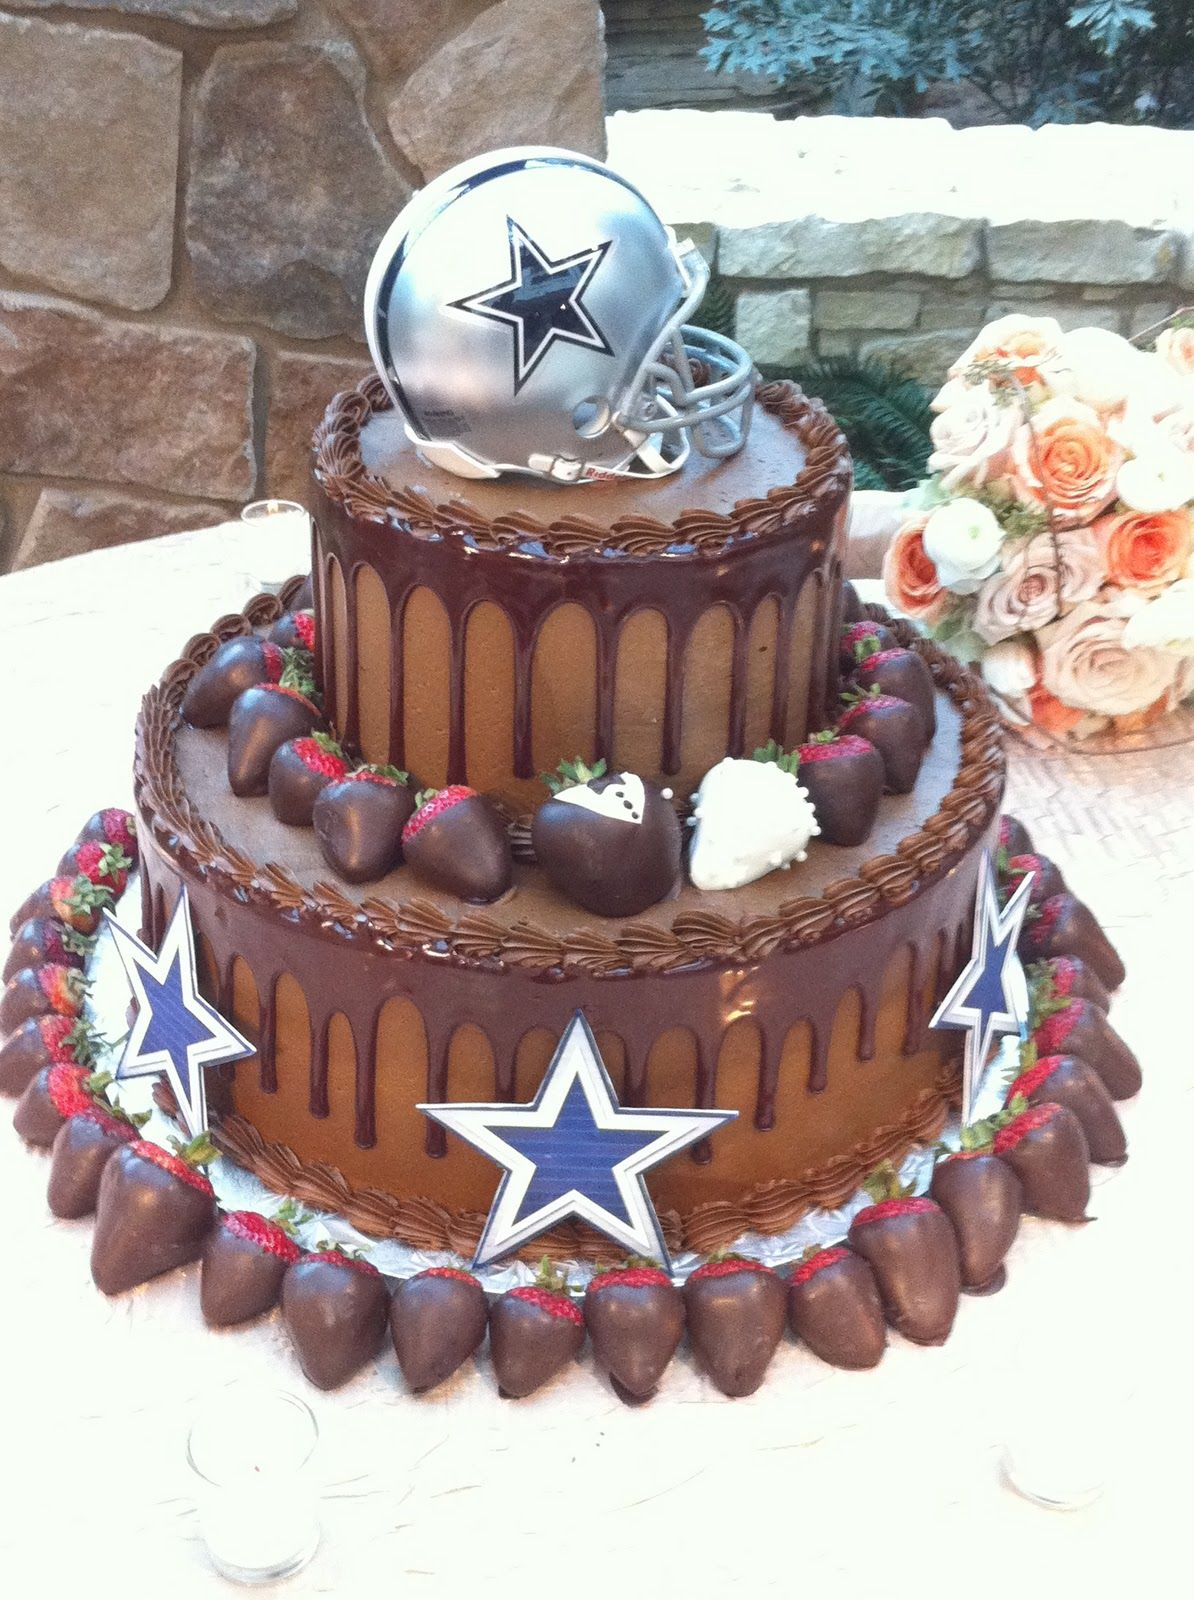 Dallas cowboys birthday cake ideas and designs - Cowboys Wedding Or Groom S Cake